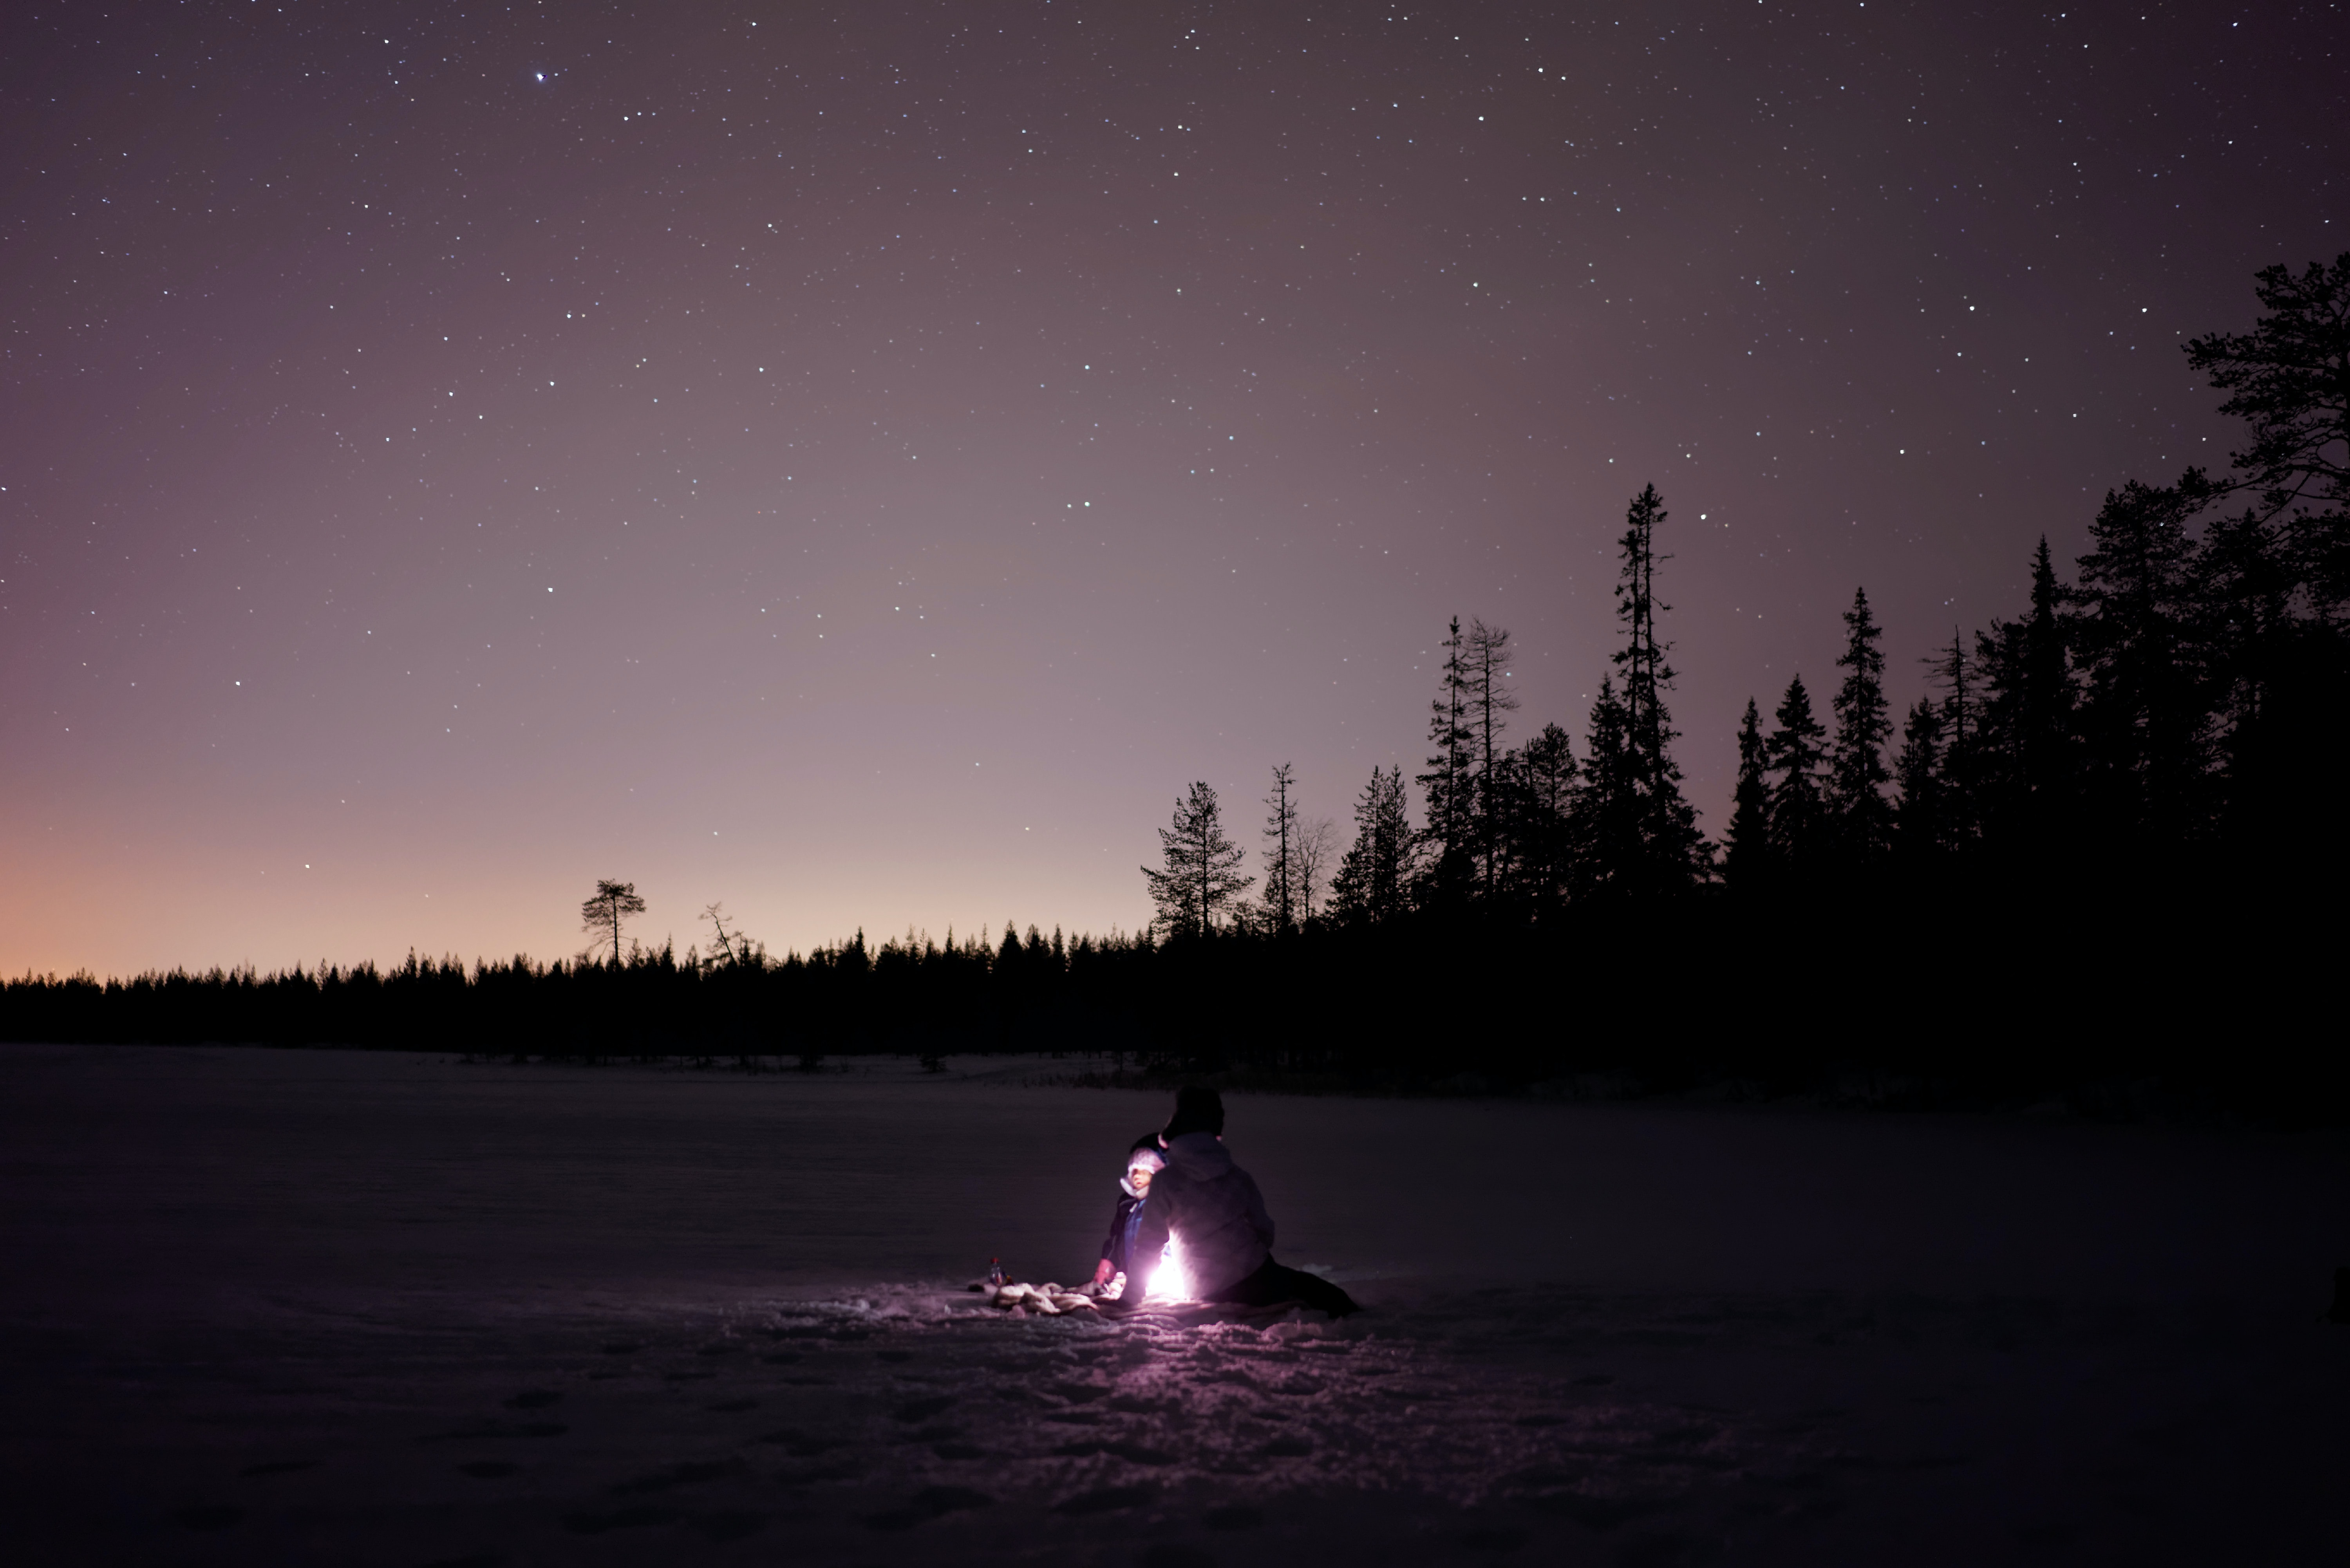 Under a twinkling purple night sky, two children huddle close to a light in the snow